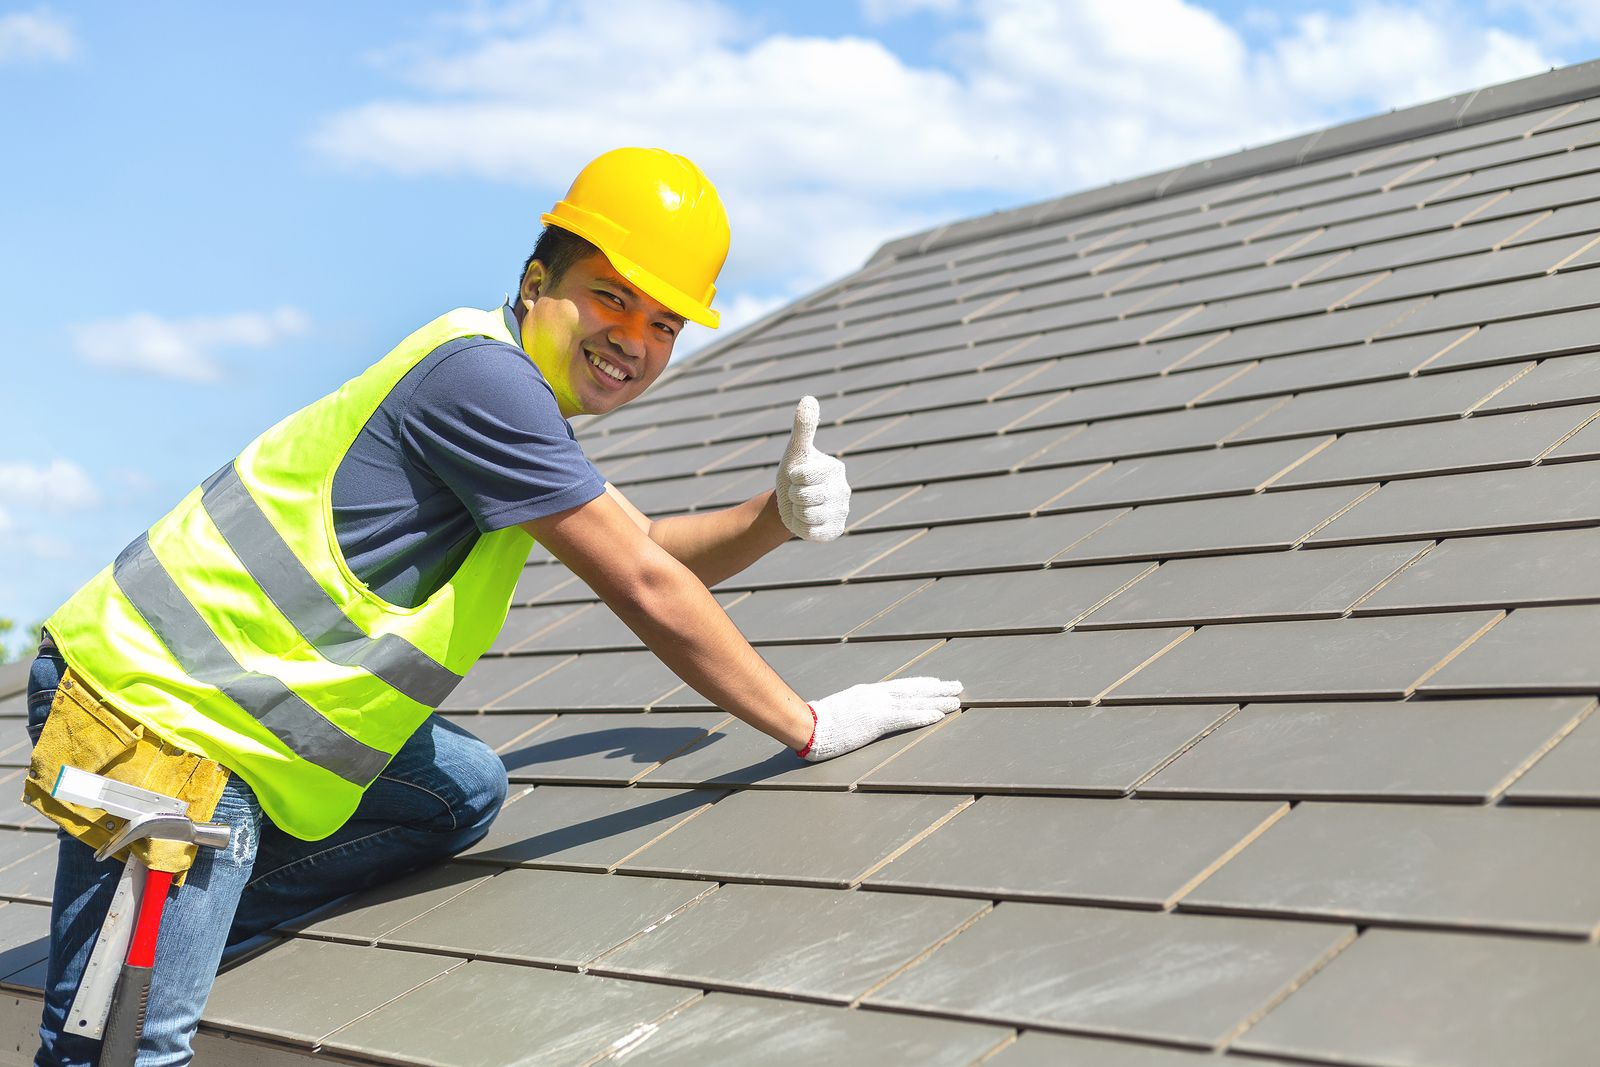 Asbestos Removal Company Hire Professionals Roofing Services Roofing Contractors Roof Repair